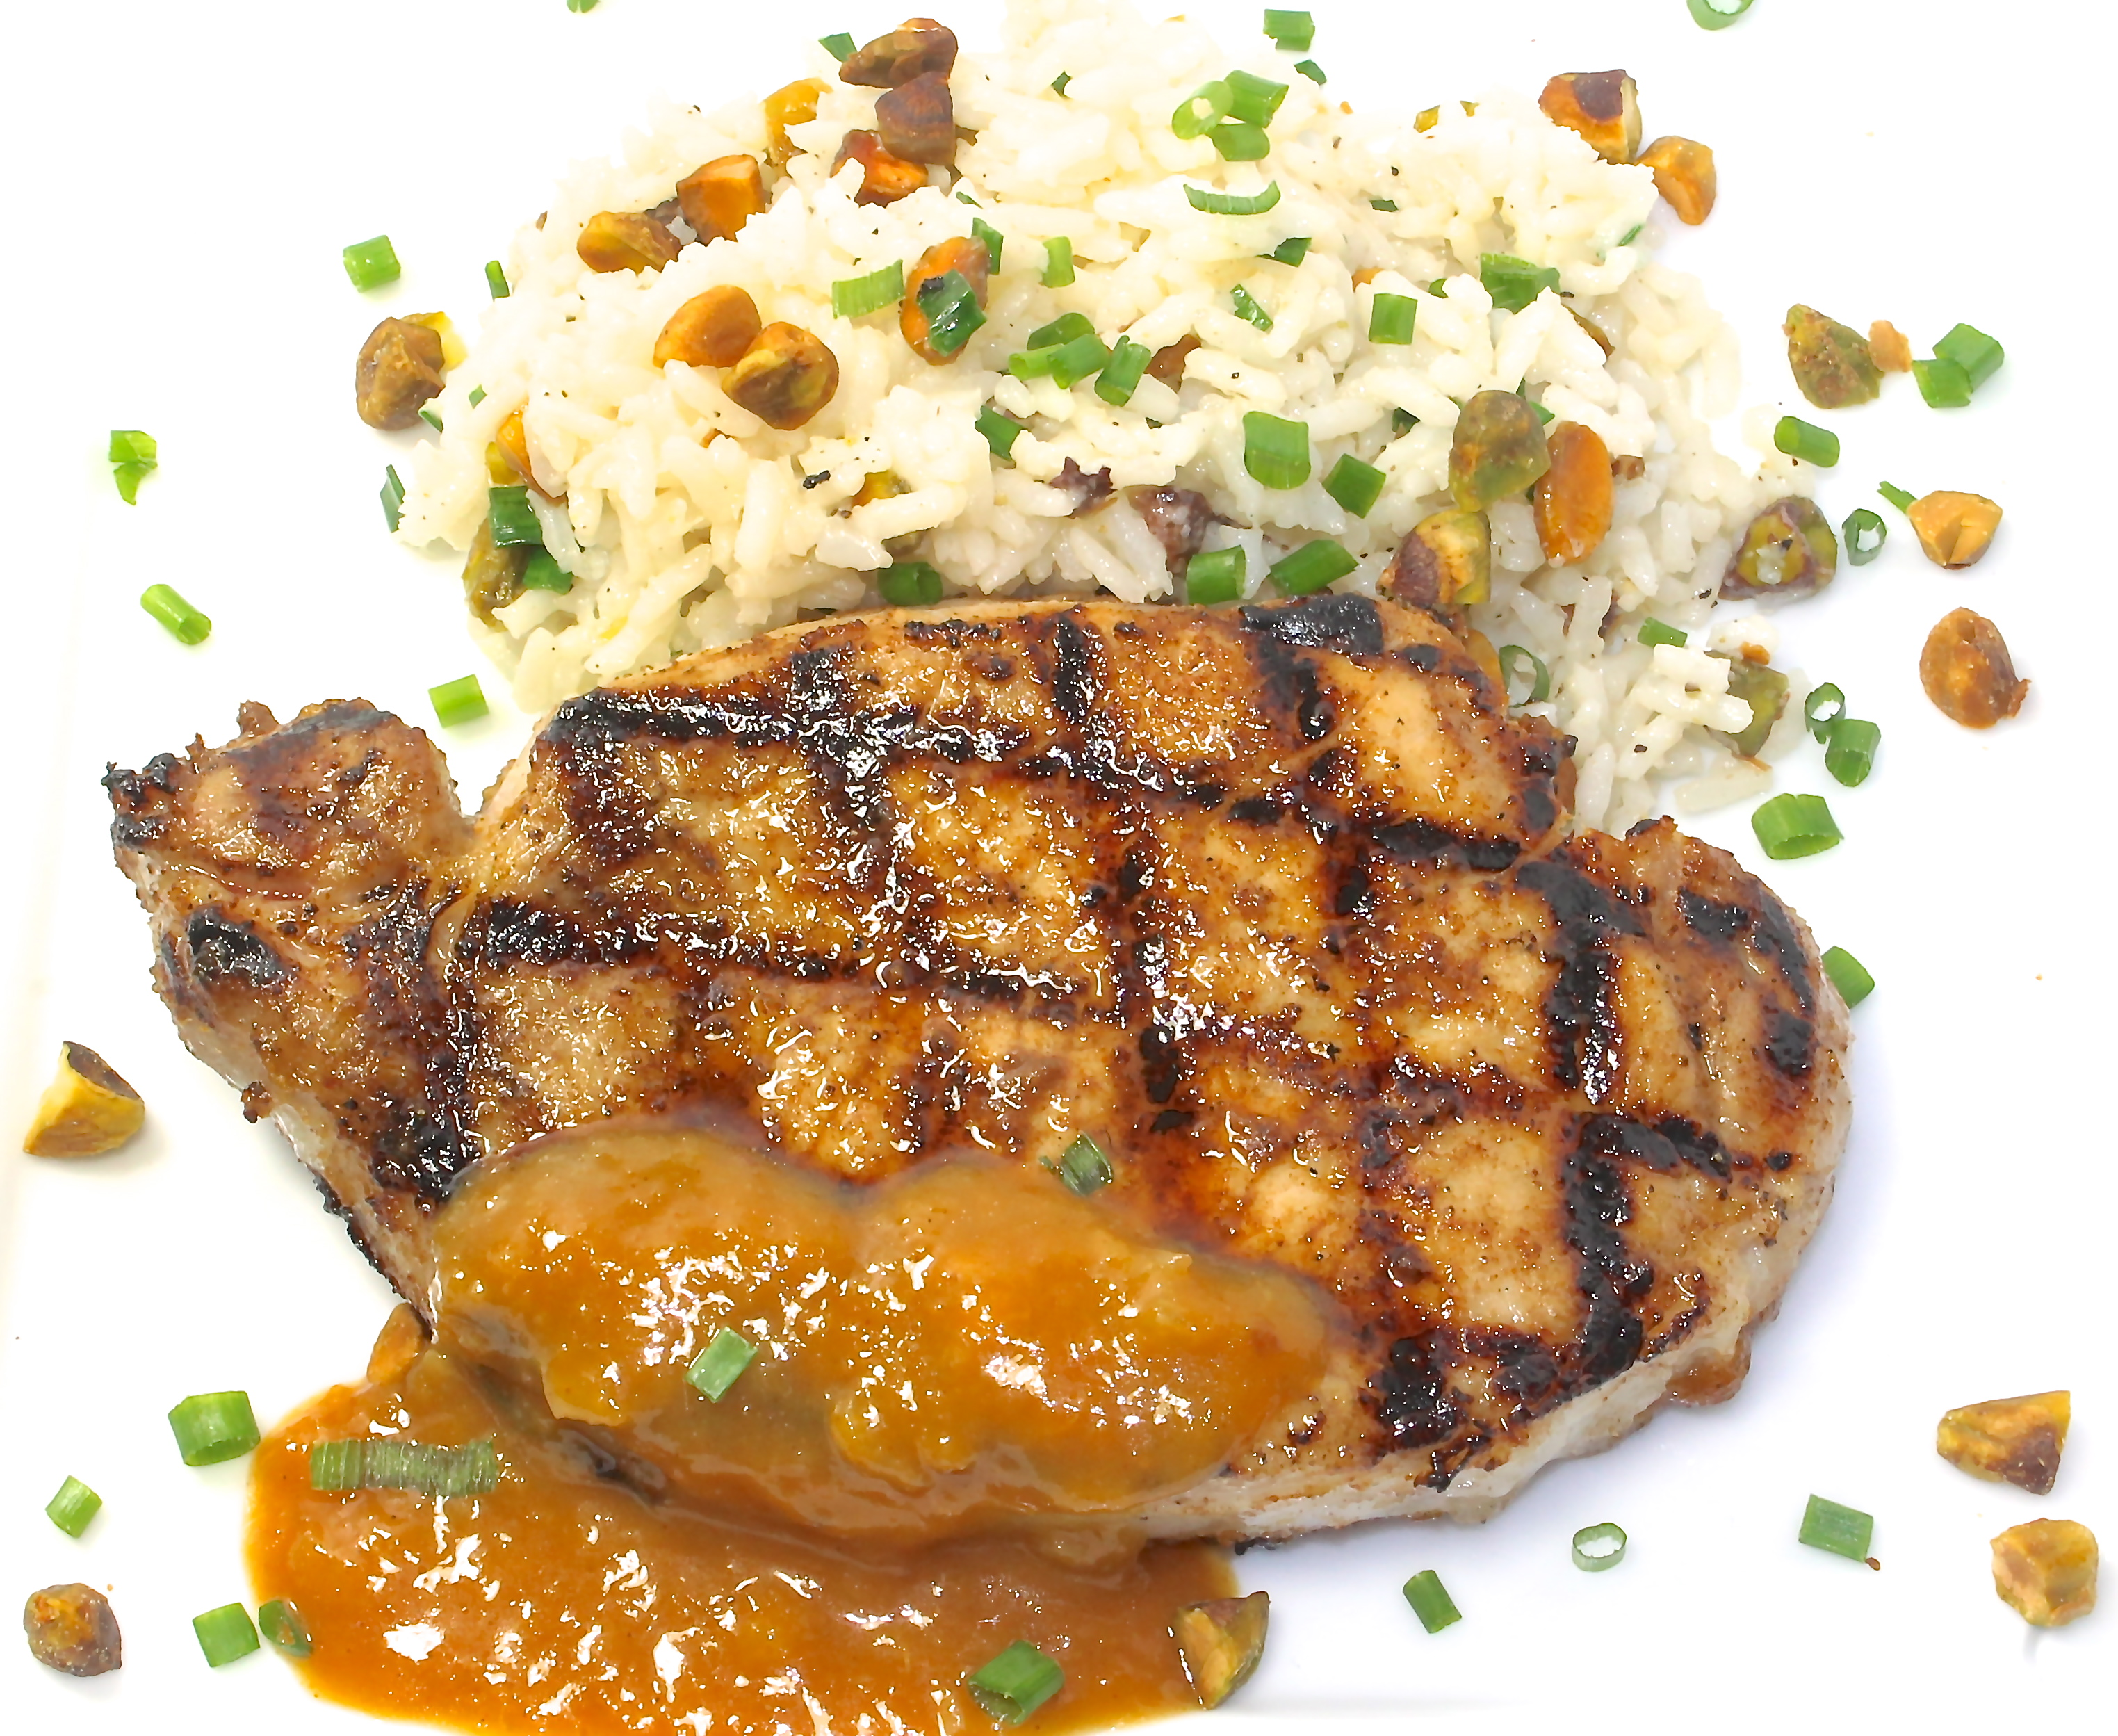 Grilled Pork Chops With An Orange Ginger Sauce | Back Road ...